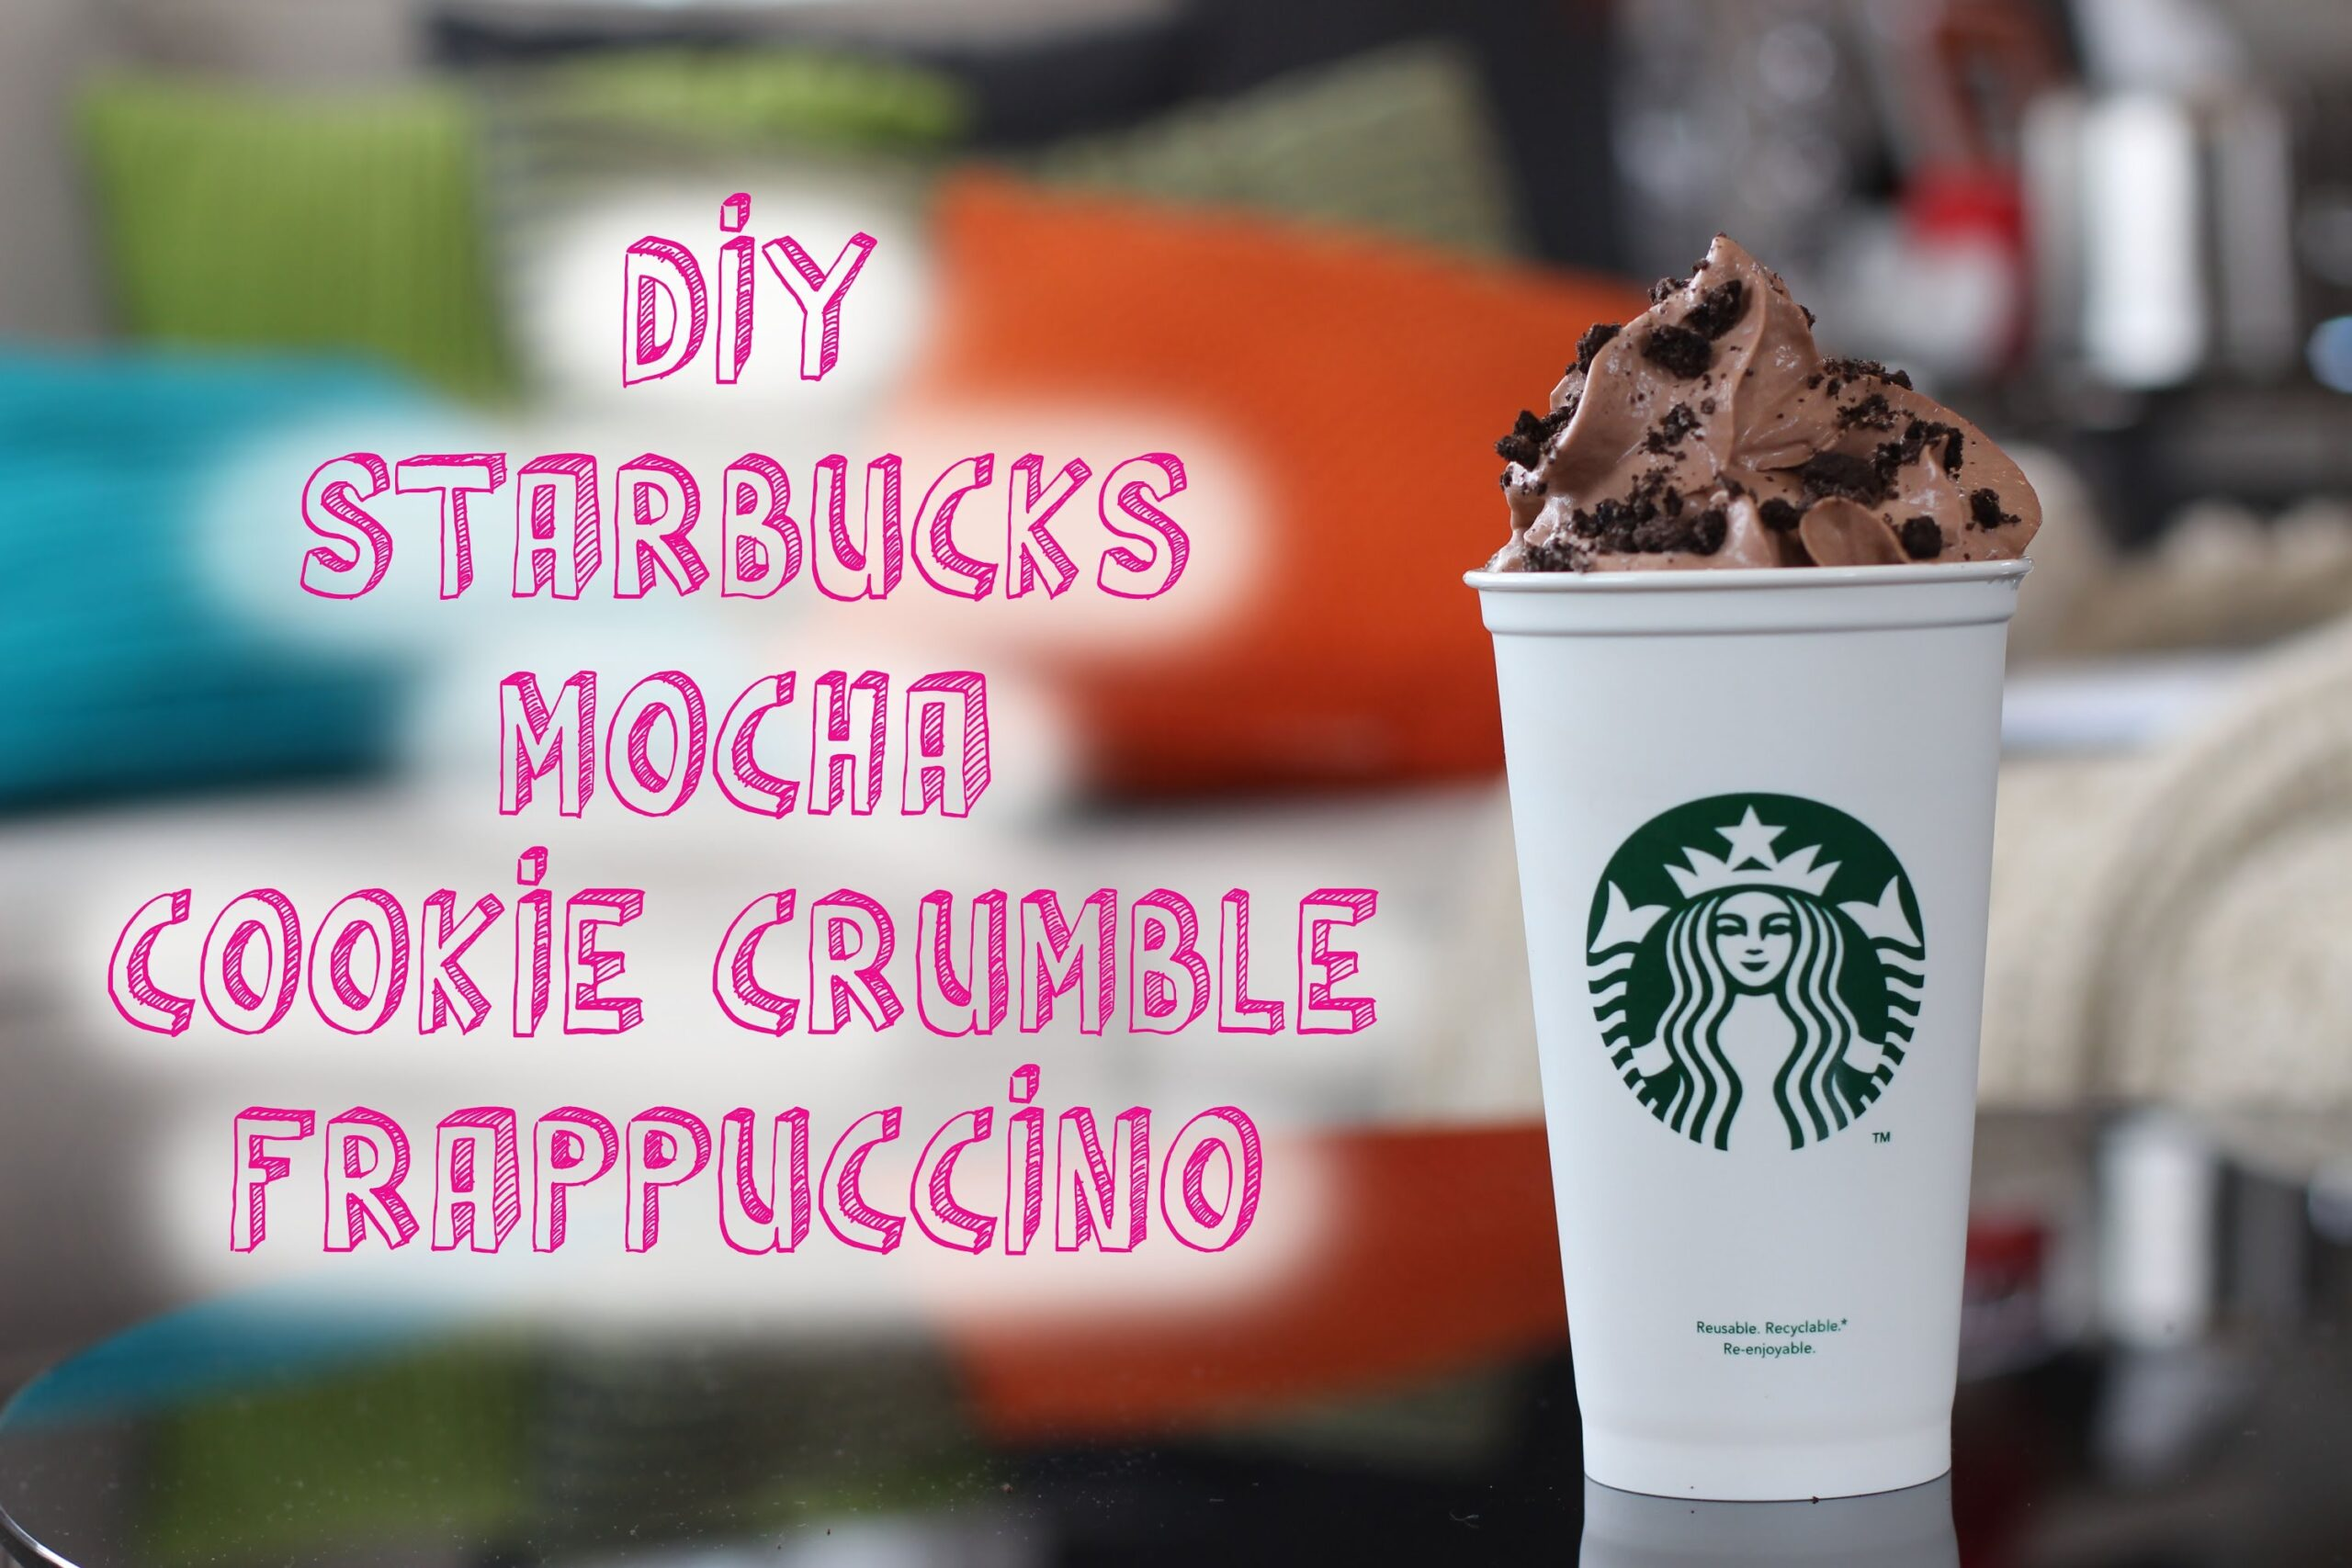 DIY MOCHA COOKIE CRUMBLE FRAPPUCCINO